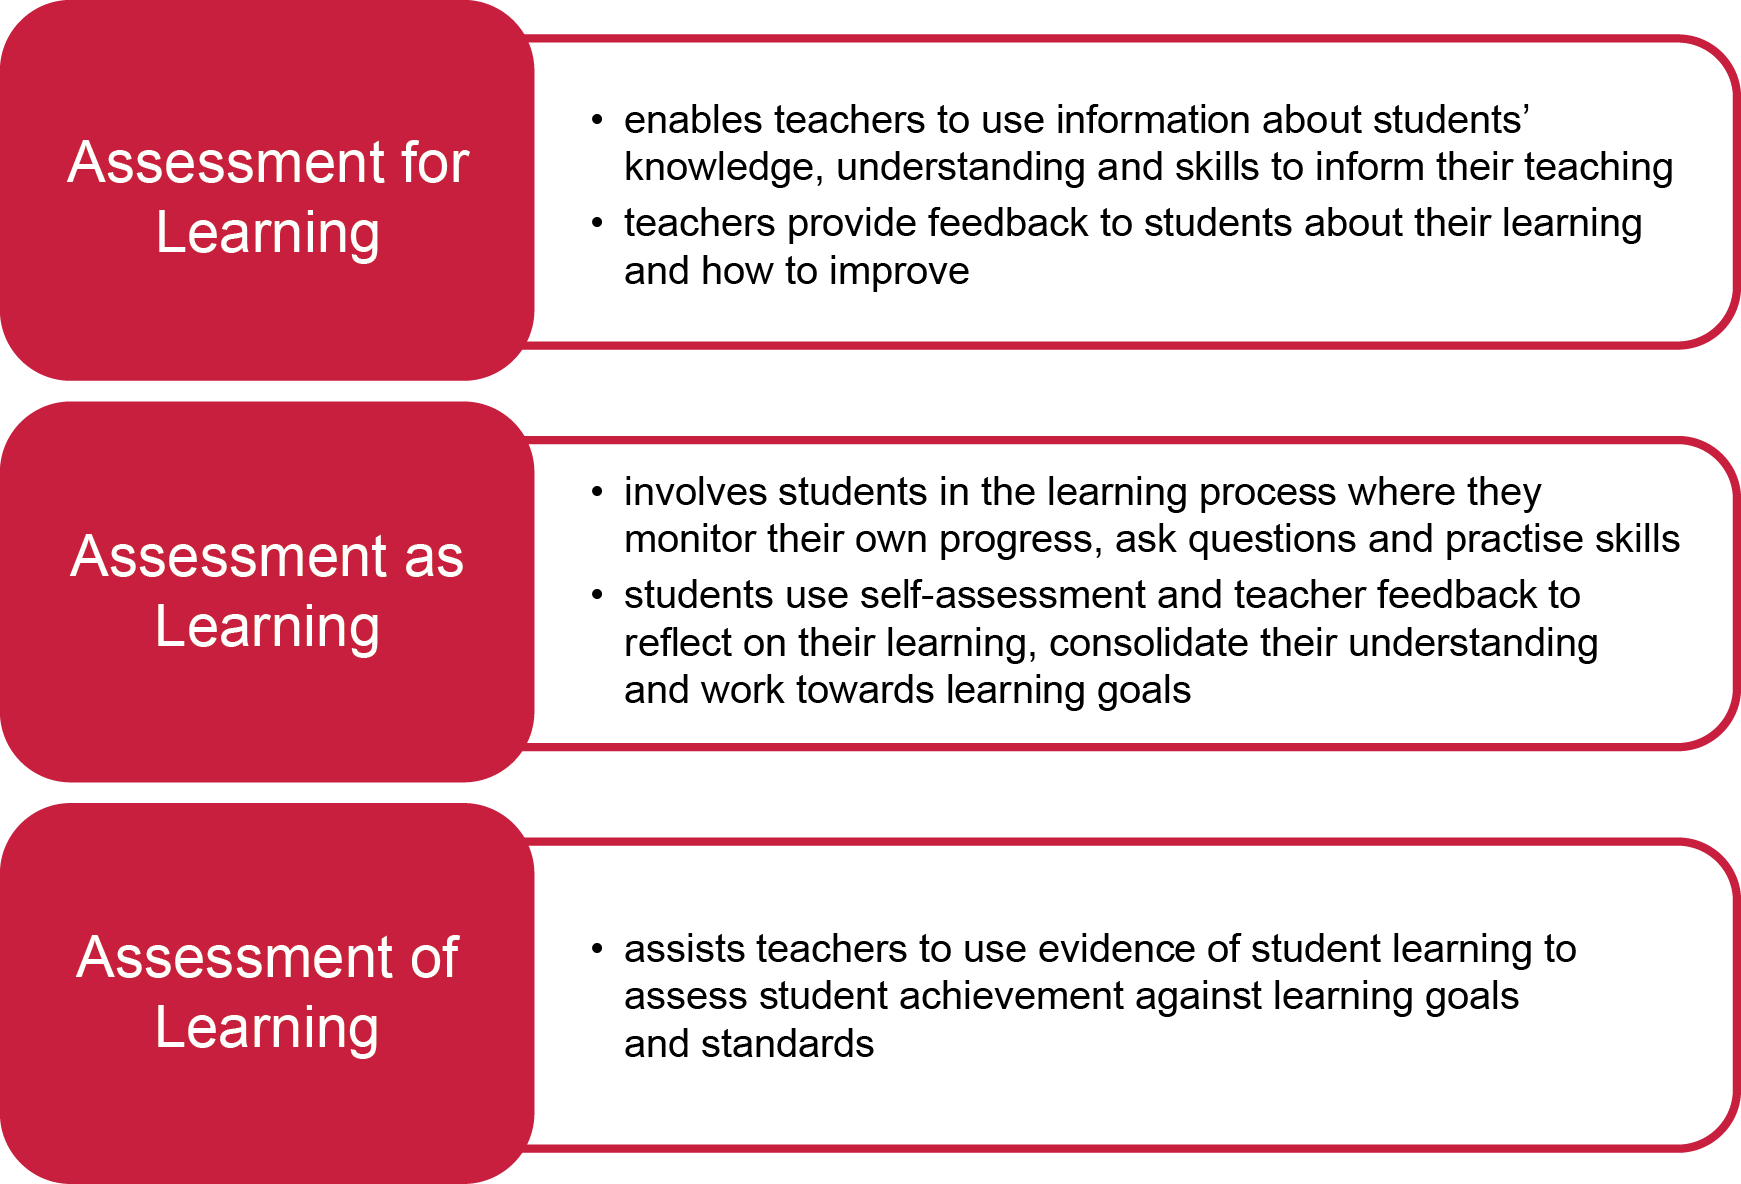 This diagram summarises the essential features of three approaches to assessment; assessment for learning, assessment as learning and assessment of learning.